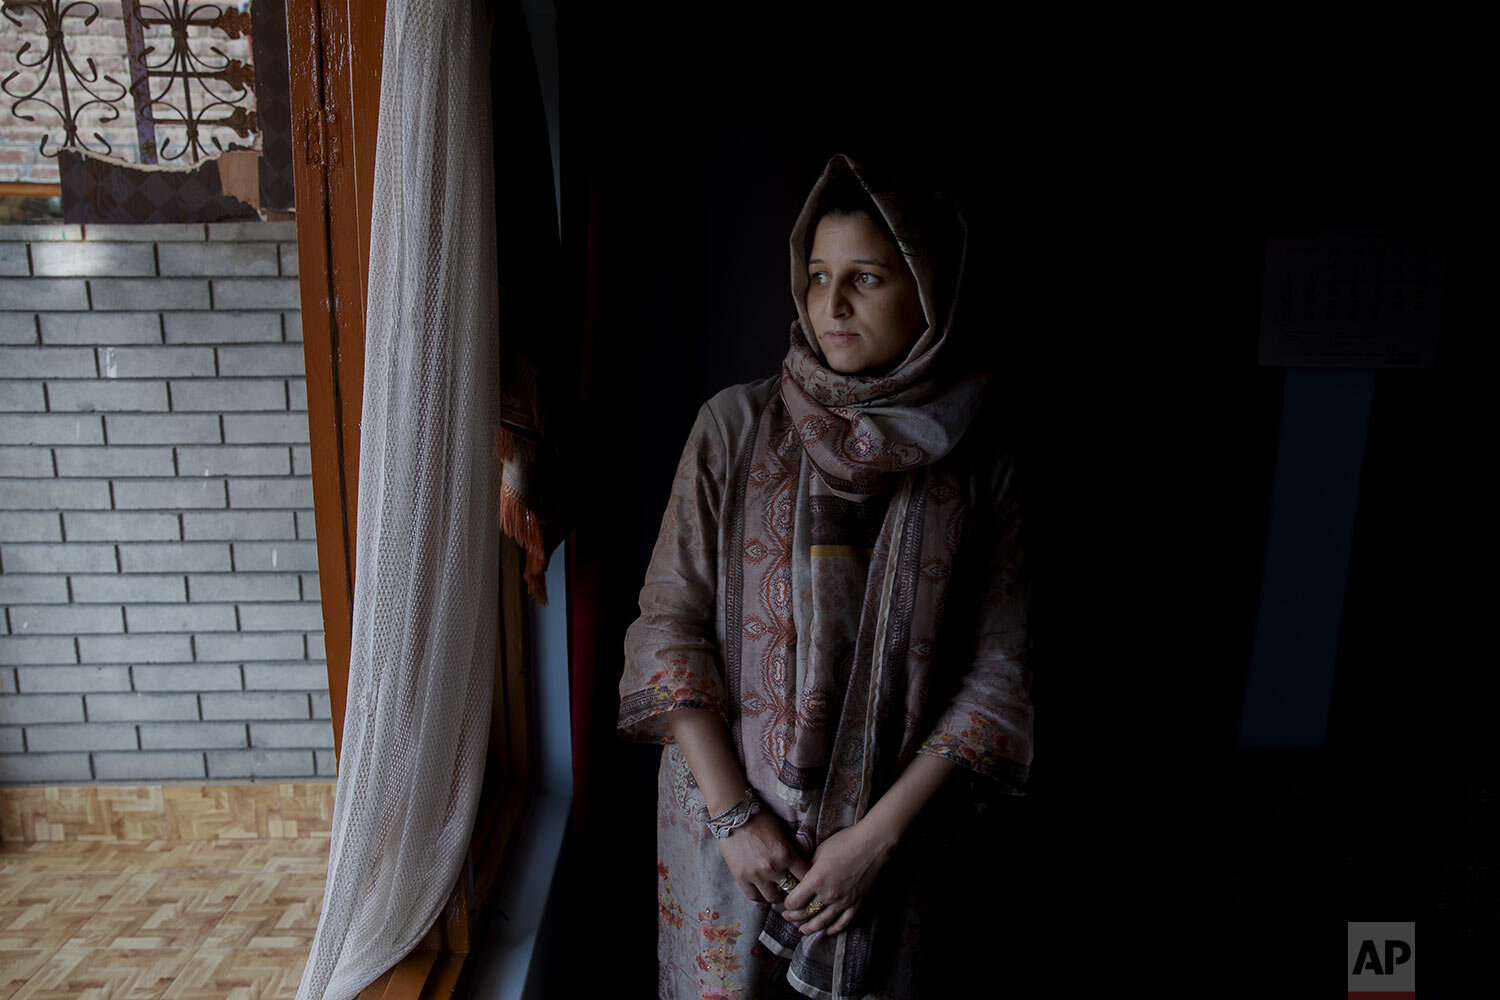 Kulsuma Rameez stands for photographs inside her home on the outskirts of Srinagar, Indian controlled Kashmir, Monday, Oct. 14, 2019. (AP Photo/ Dar Yasin)